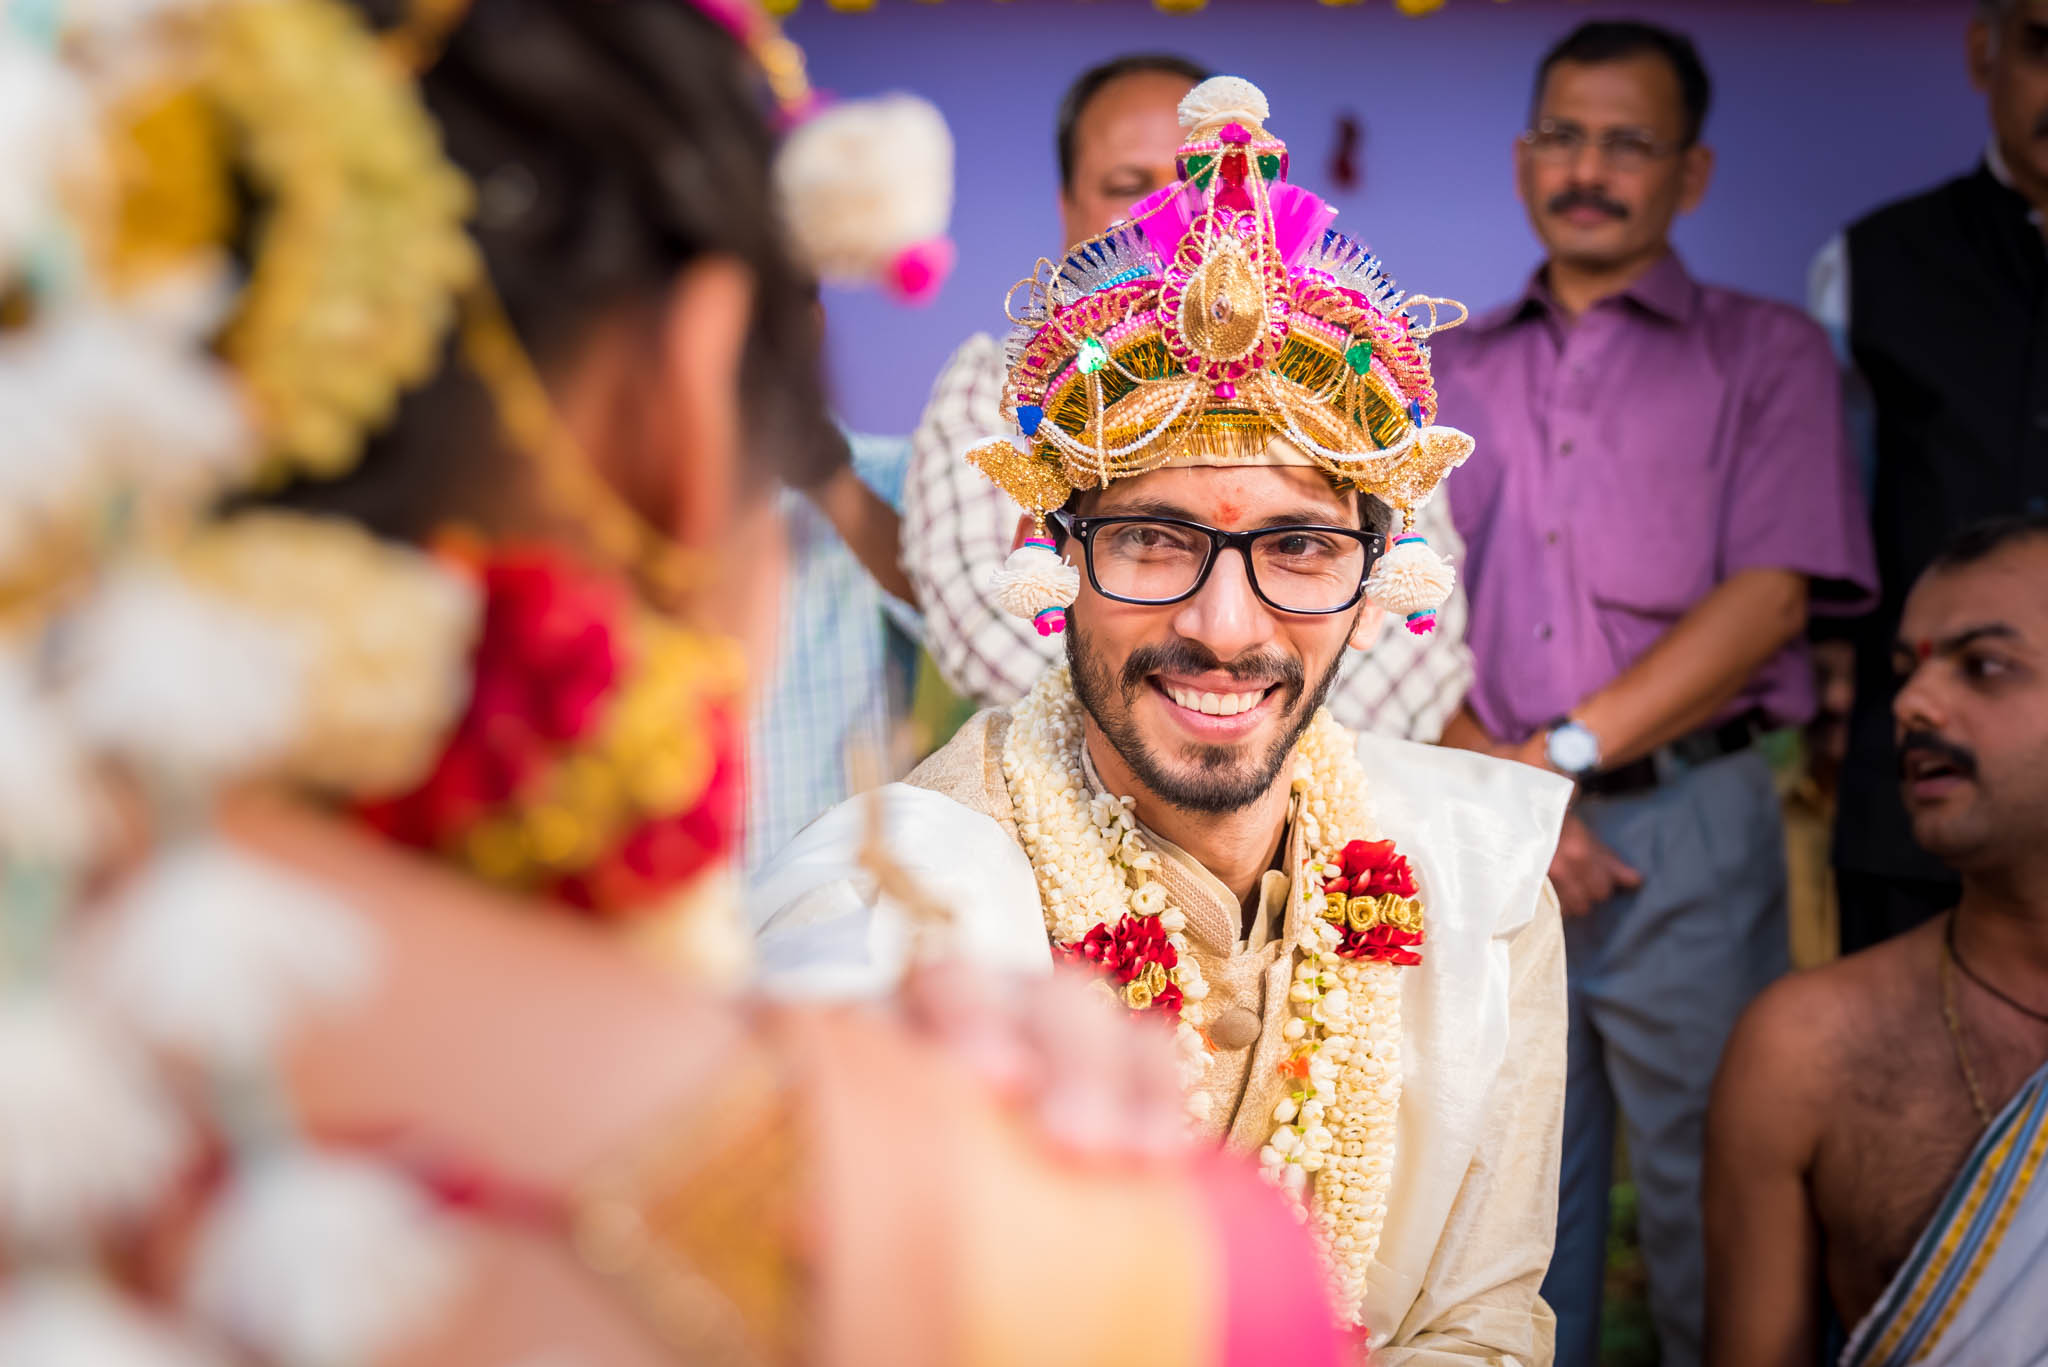 WhatKnot-Candid-Wedding-Photography-Mumbai-Bangalore-173